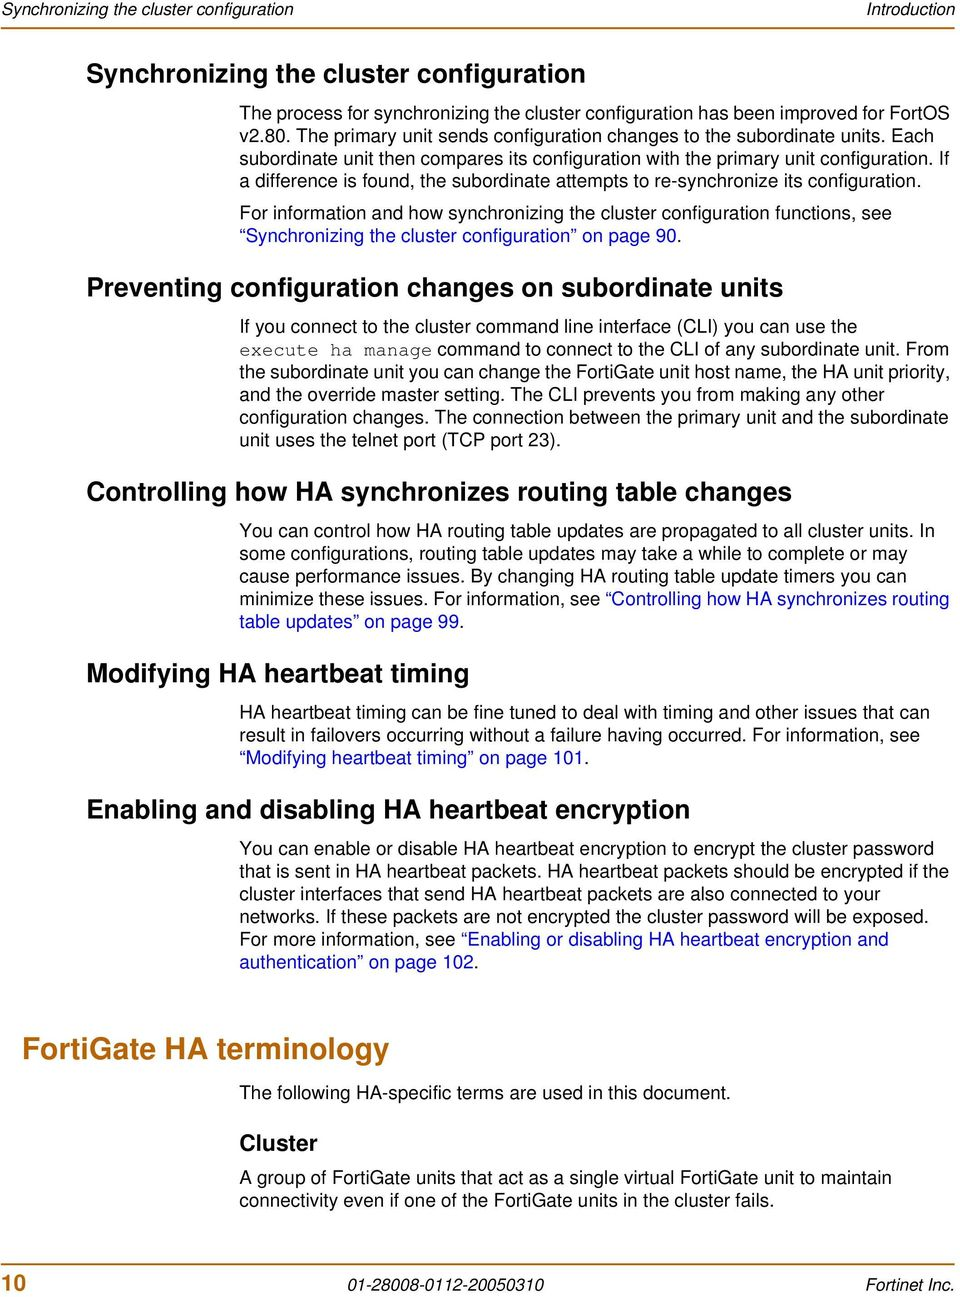 FortiGate High Availability Guide - PDF